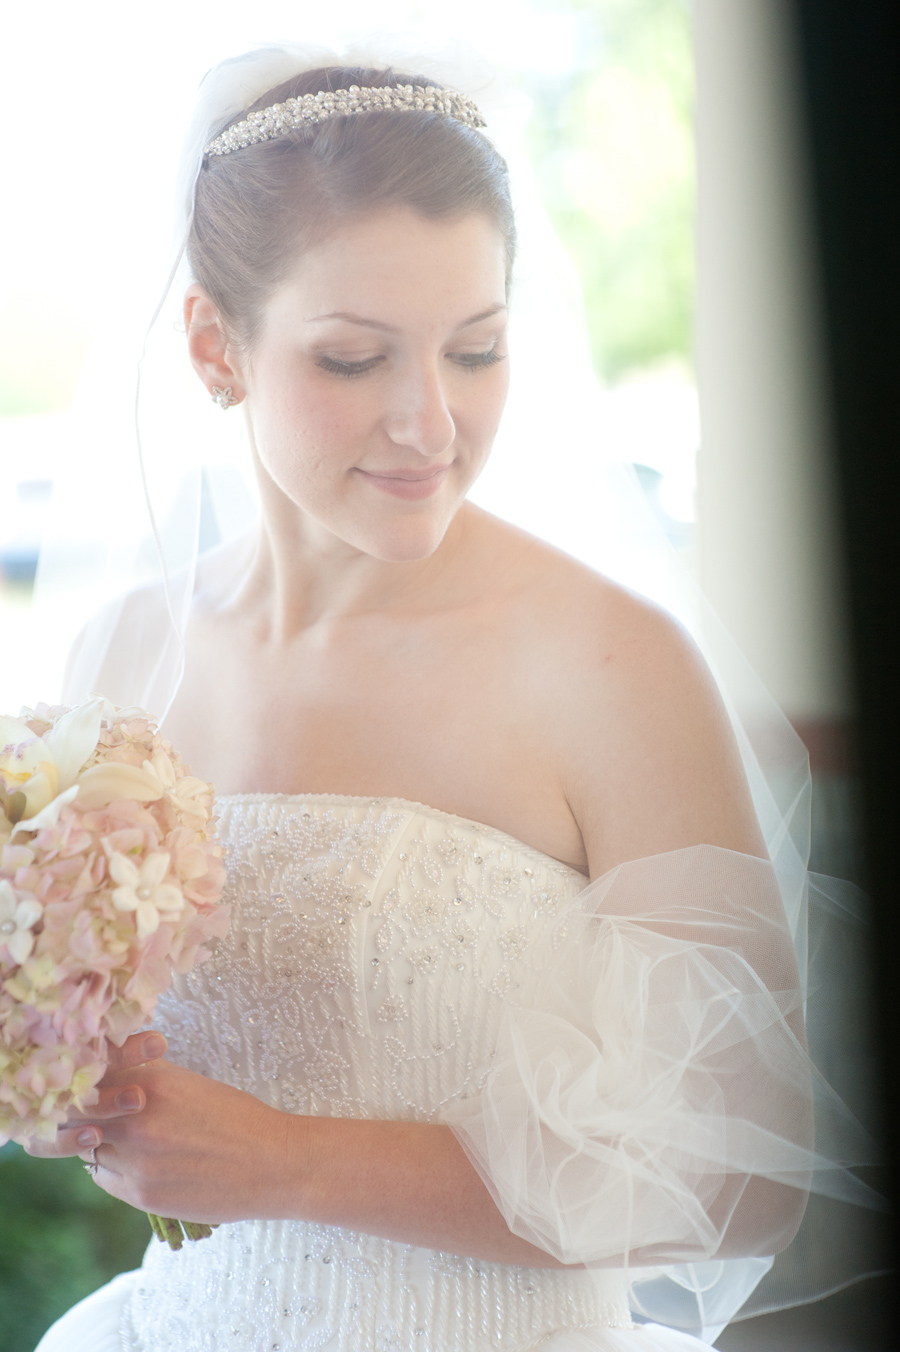 Blushing Bride Before the Ceremony